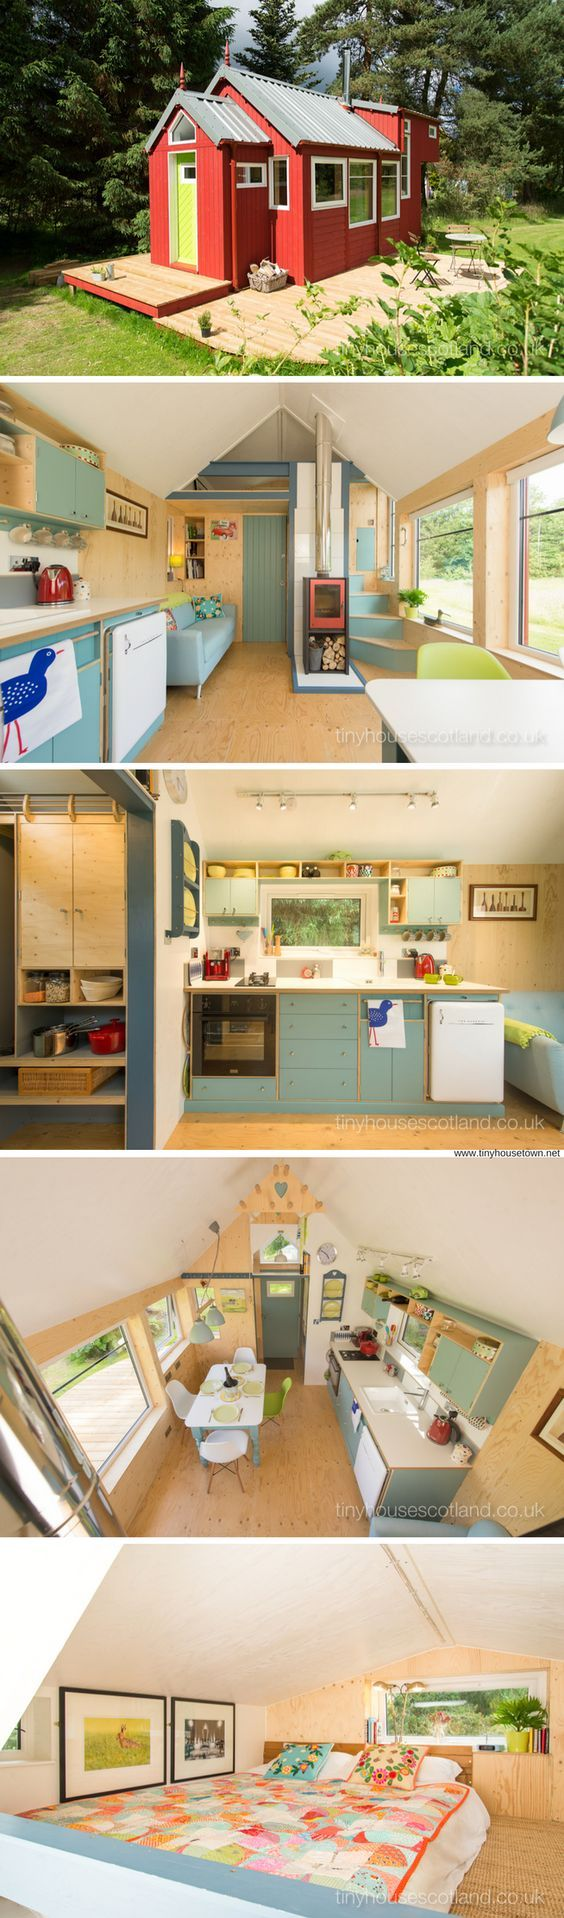 151 best Tiny House images on Pinterest   Home ideas, Micro homes ...